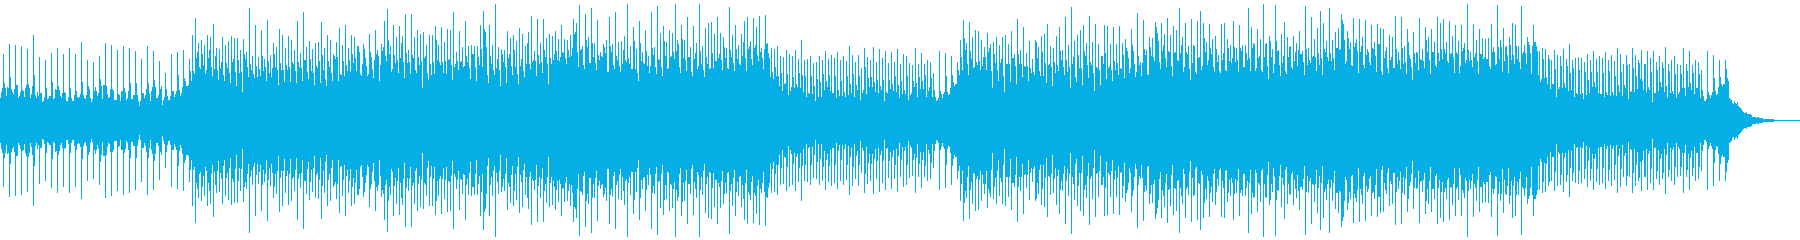 Corporate House 155's reproduced waveform